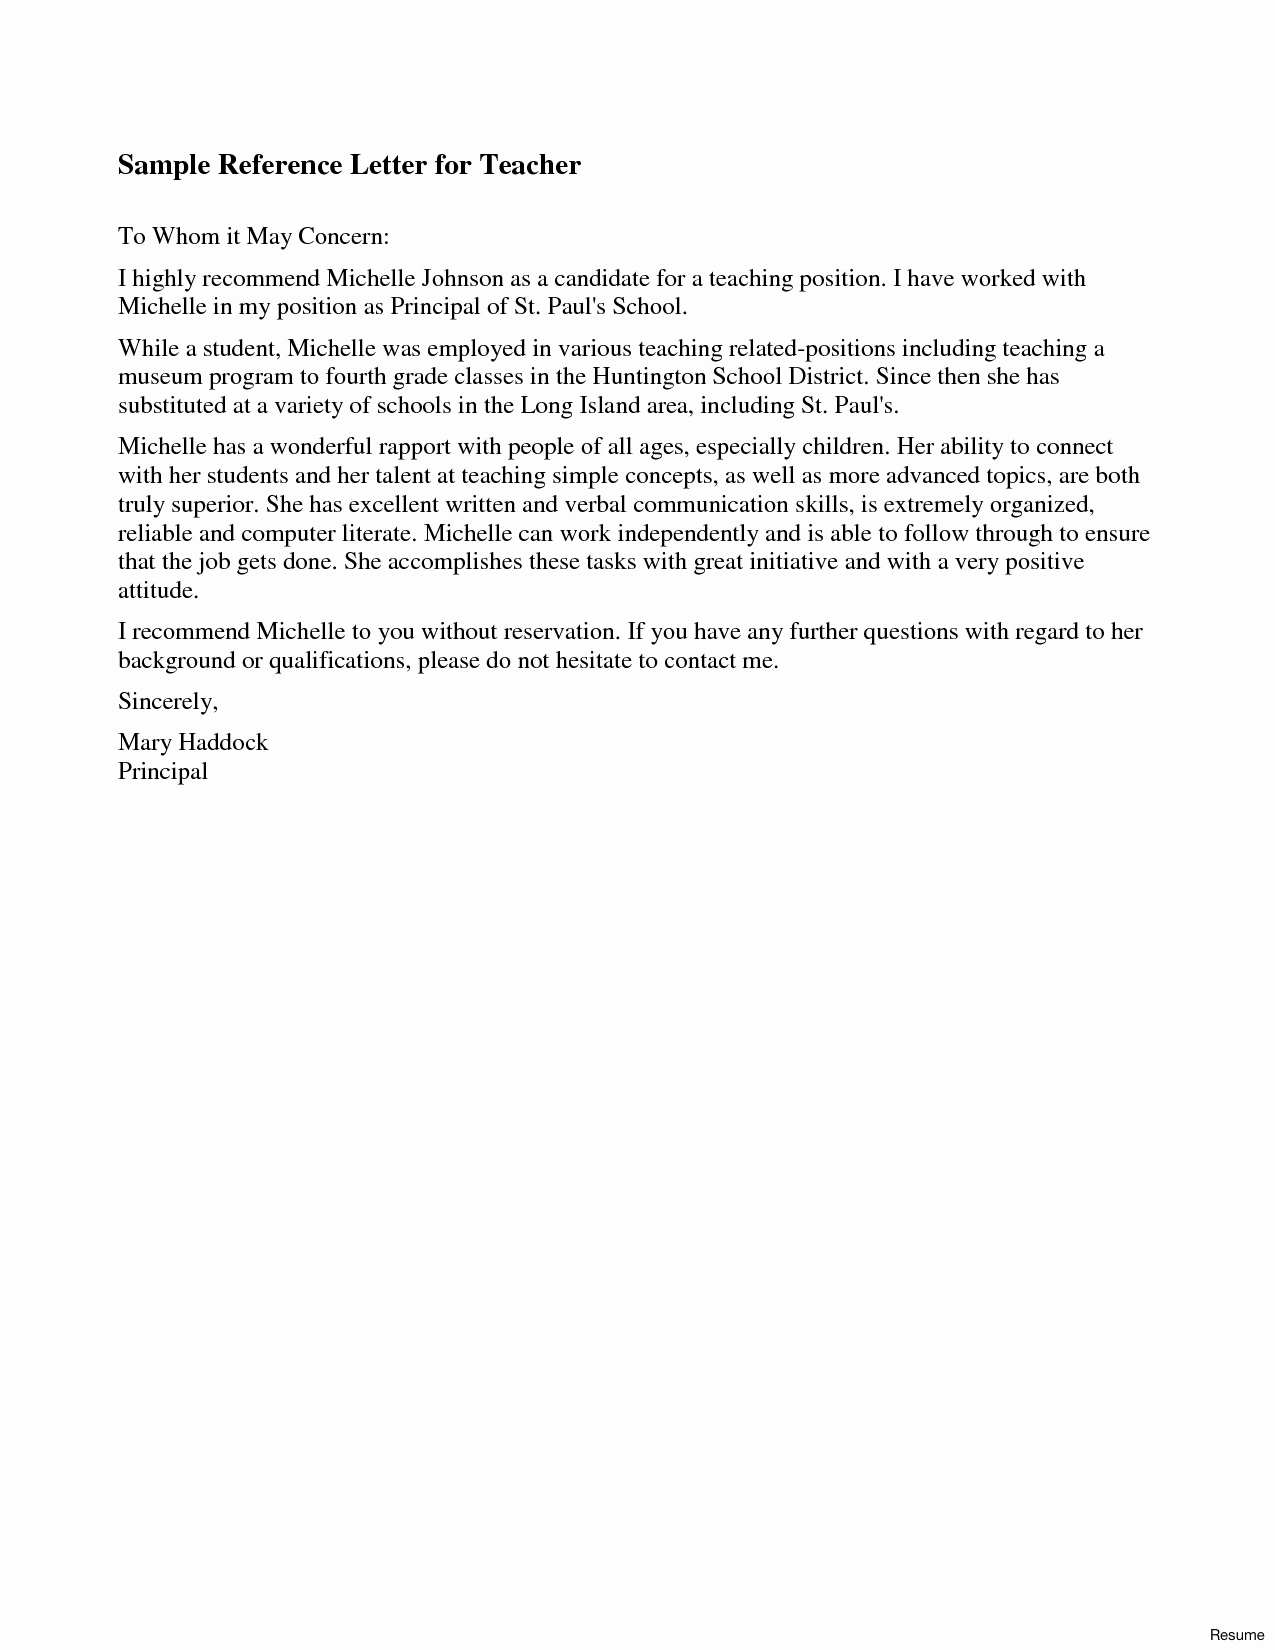 Sample Reference Letters for Teachers Awesome Letter Re Mendation Example for Teaching Position